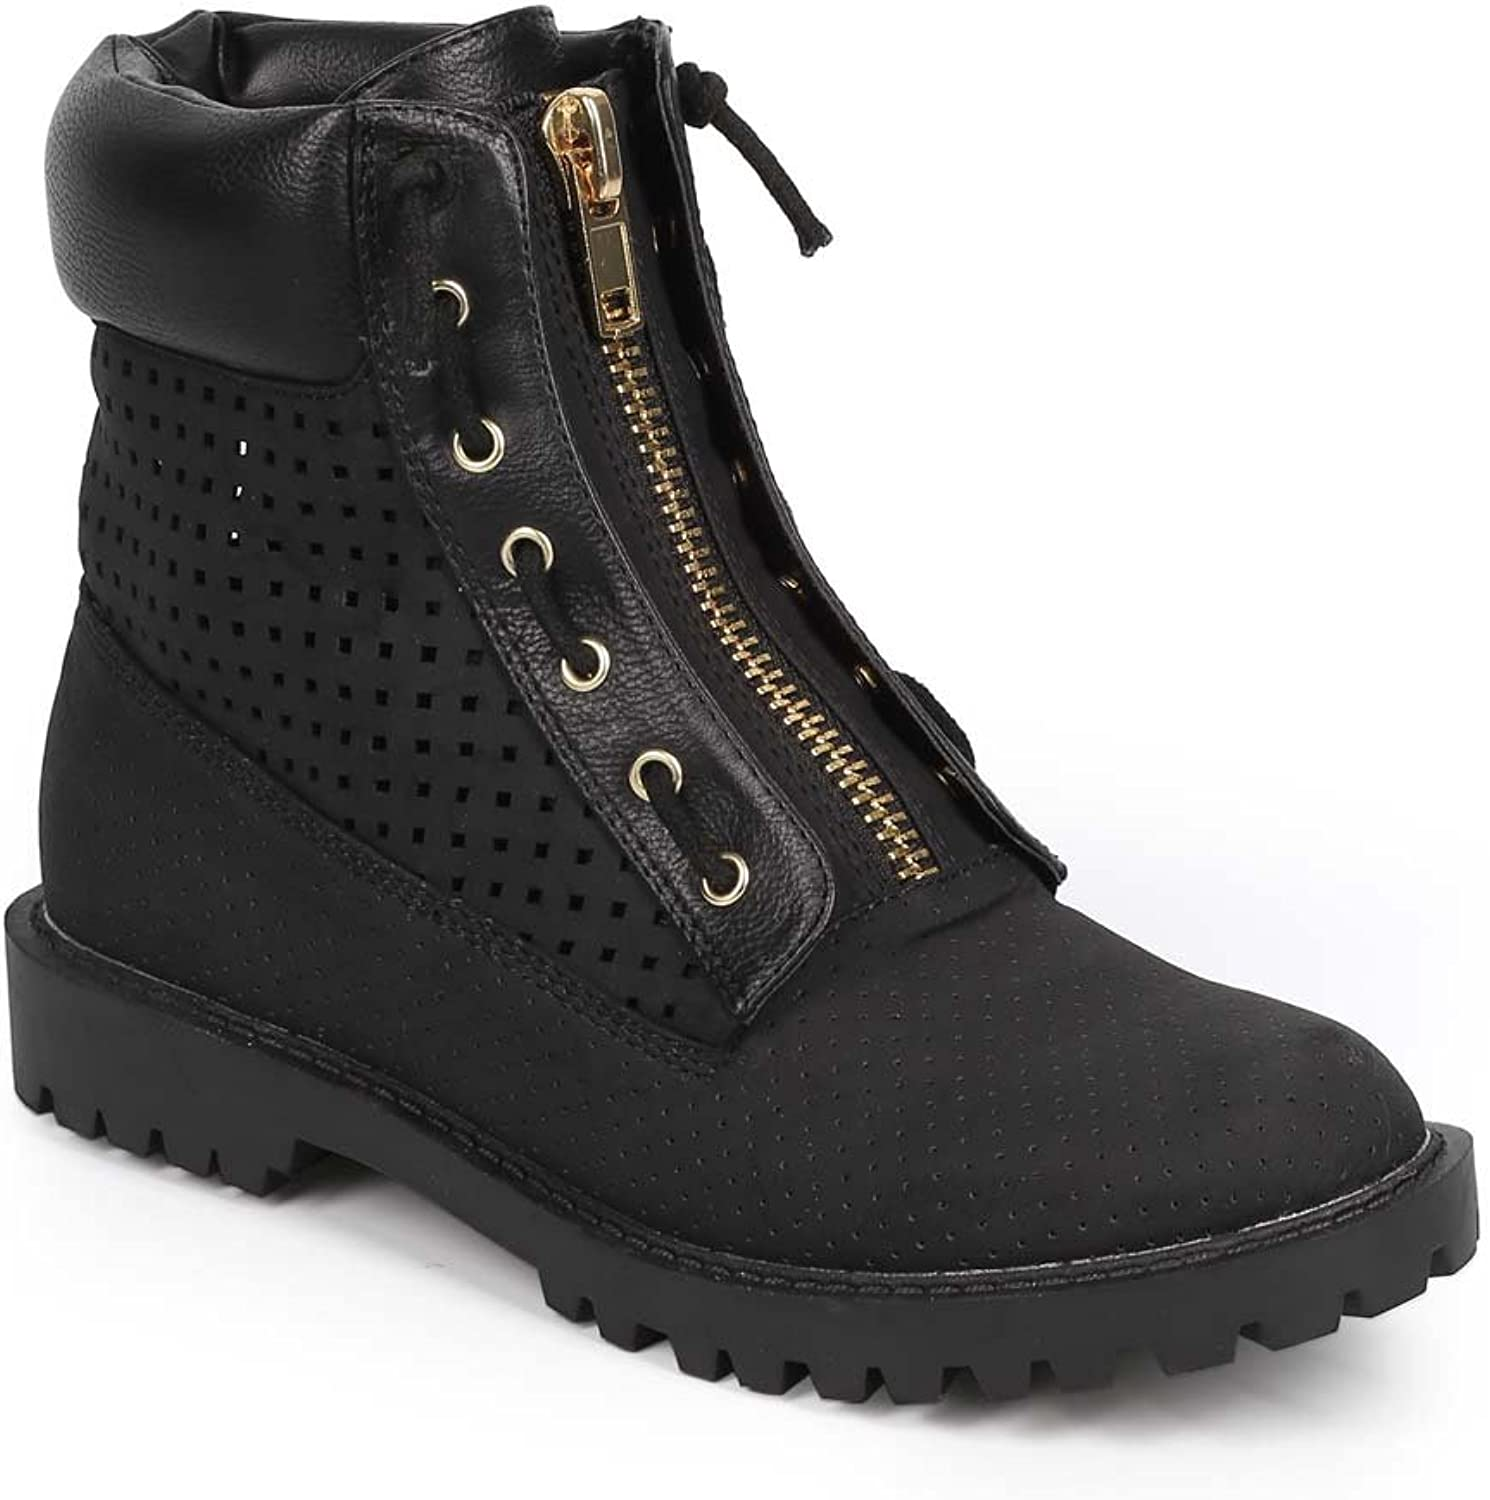 Liliana DA68 Women Leatherette Perforated Cushion Cuff Work All Weather Boot - Black